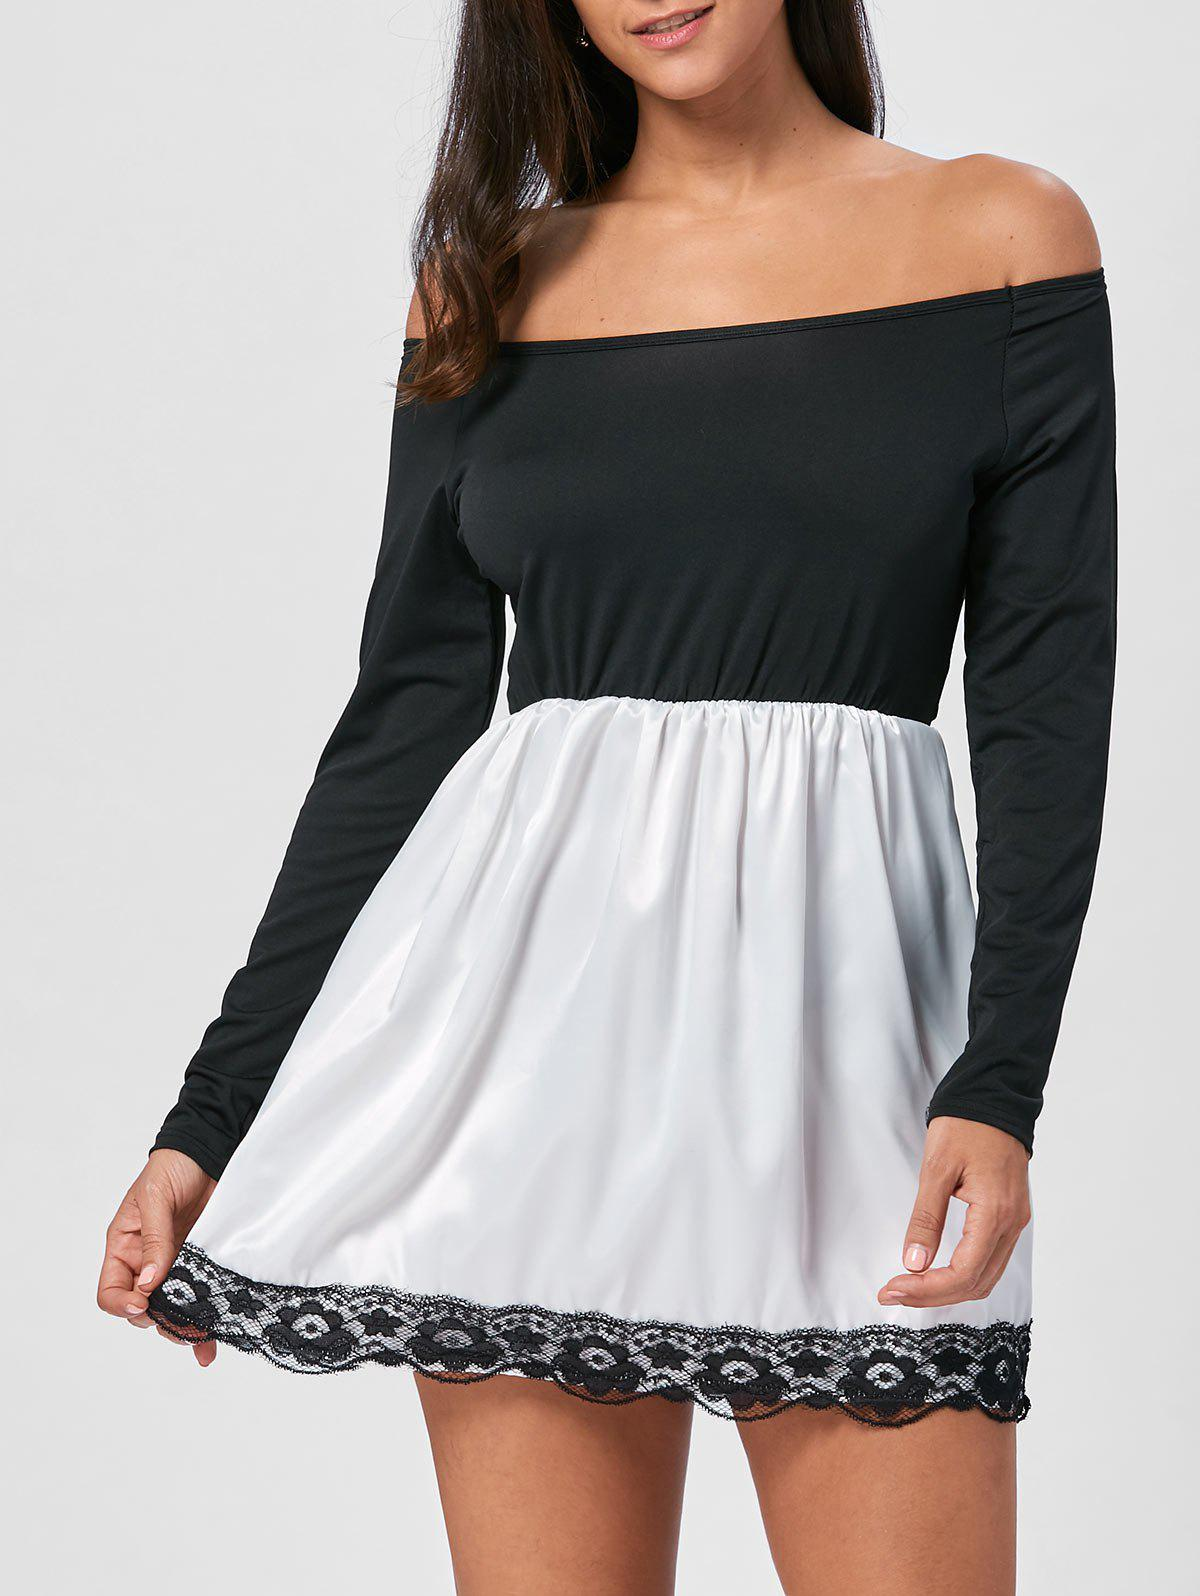 Off The Shoulder Cocktail Dress - BLACK L